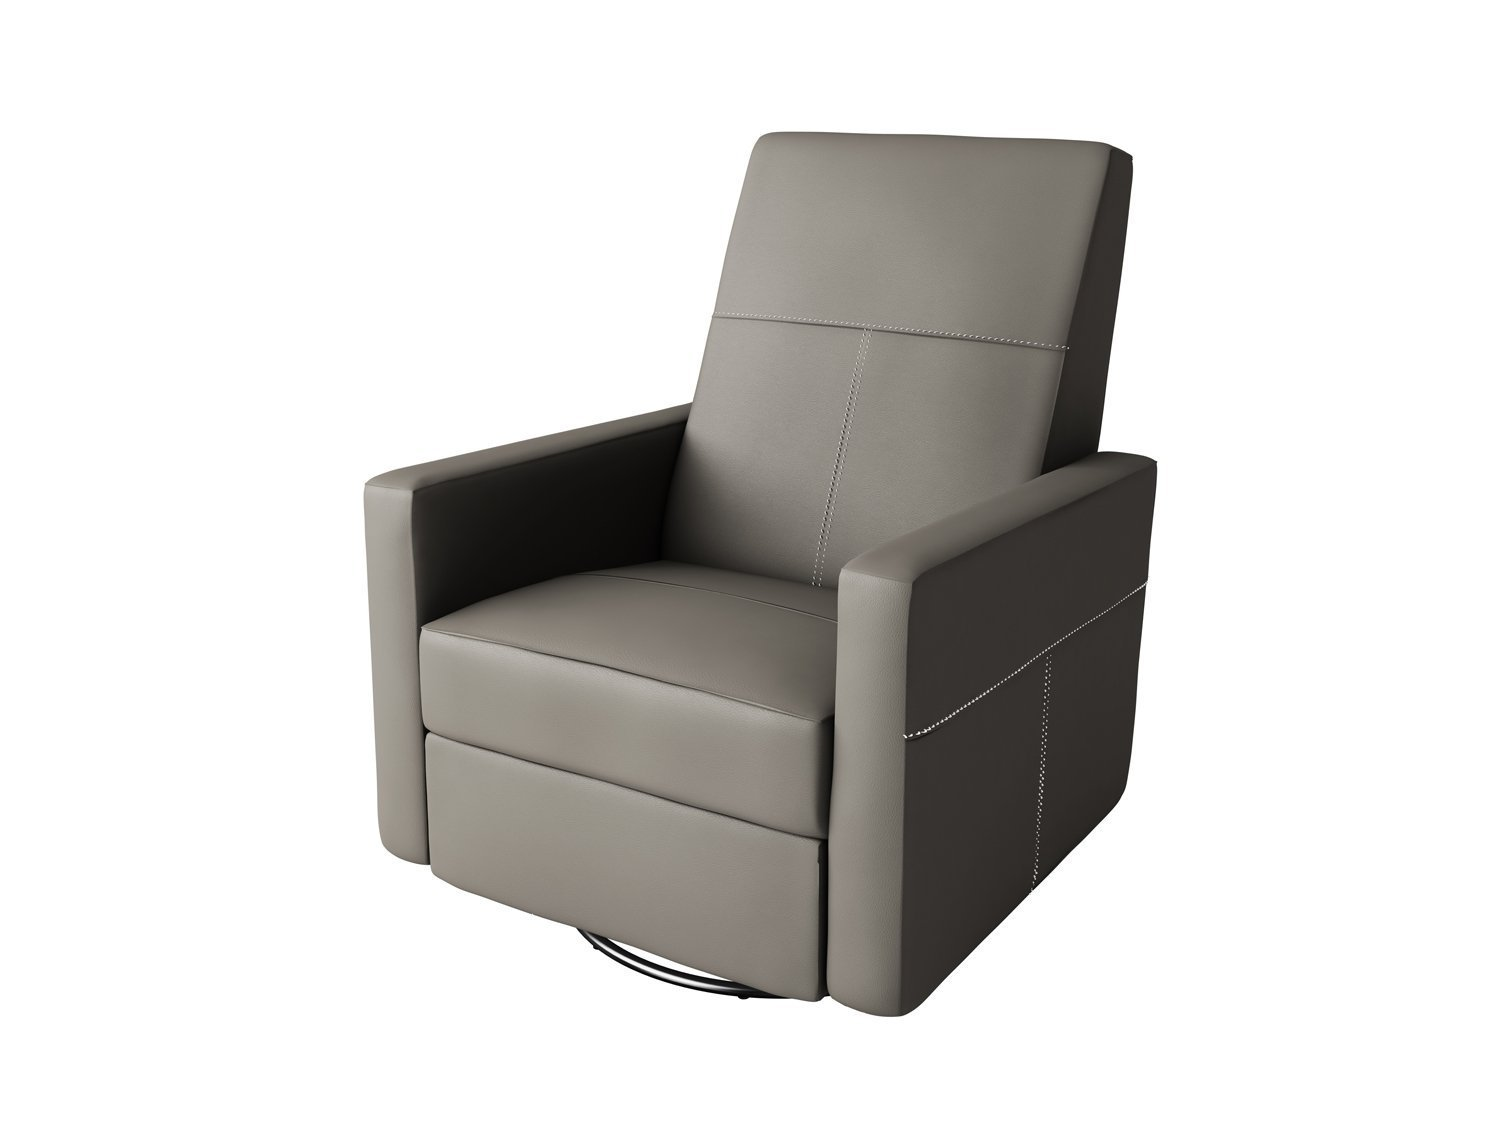 Best Dutailier Ultramotion for Glidder Ideas: Dutailier Ultramotion | Dutailier Glider Recliner And Ottoman | Canadian Glider Chair